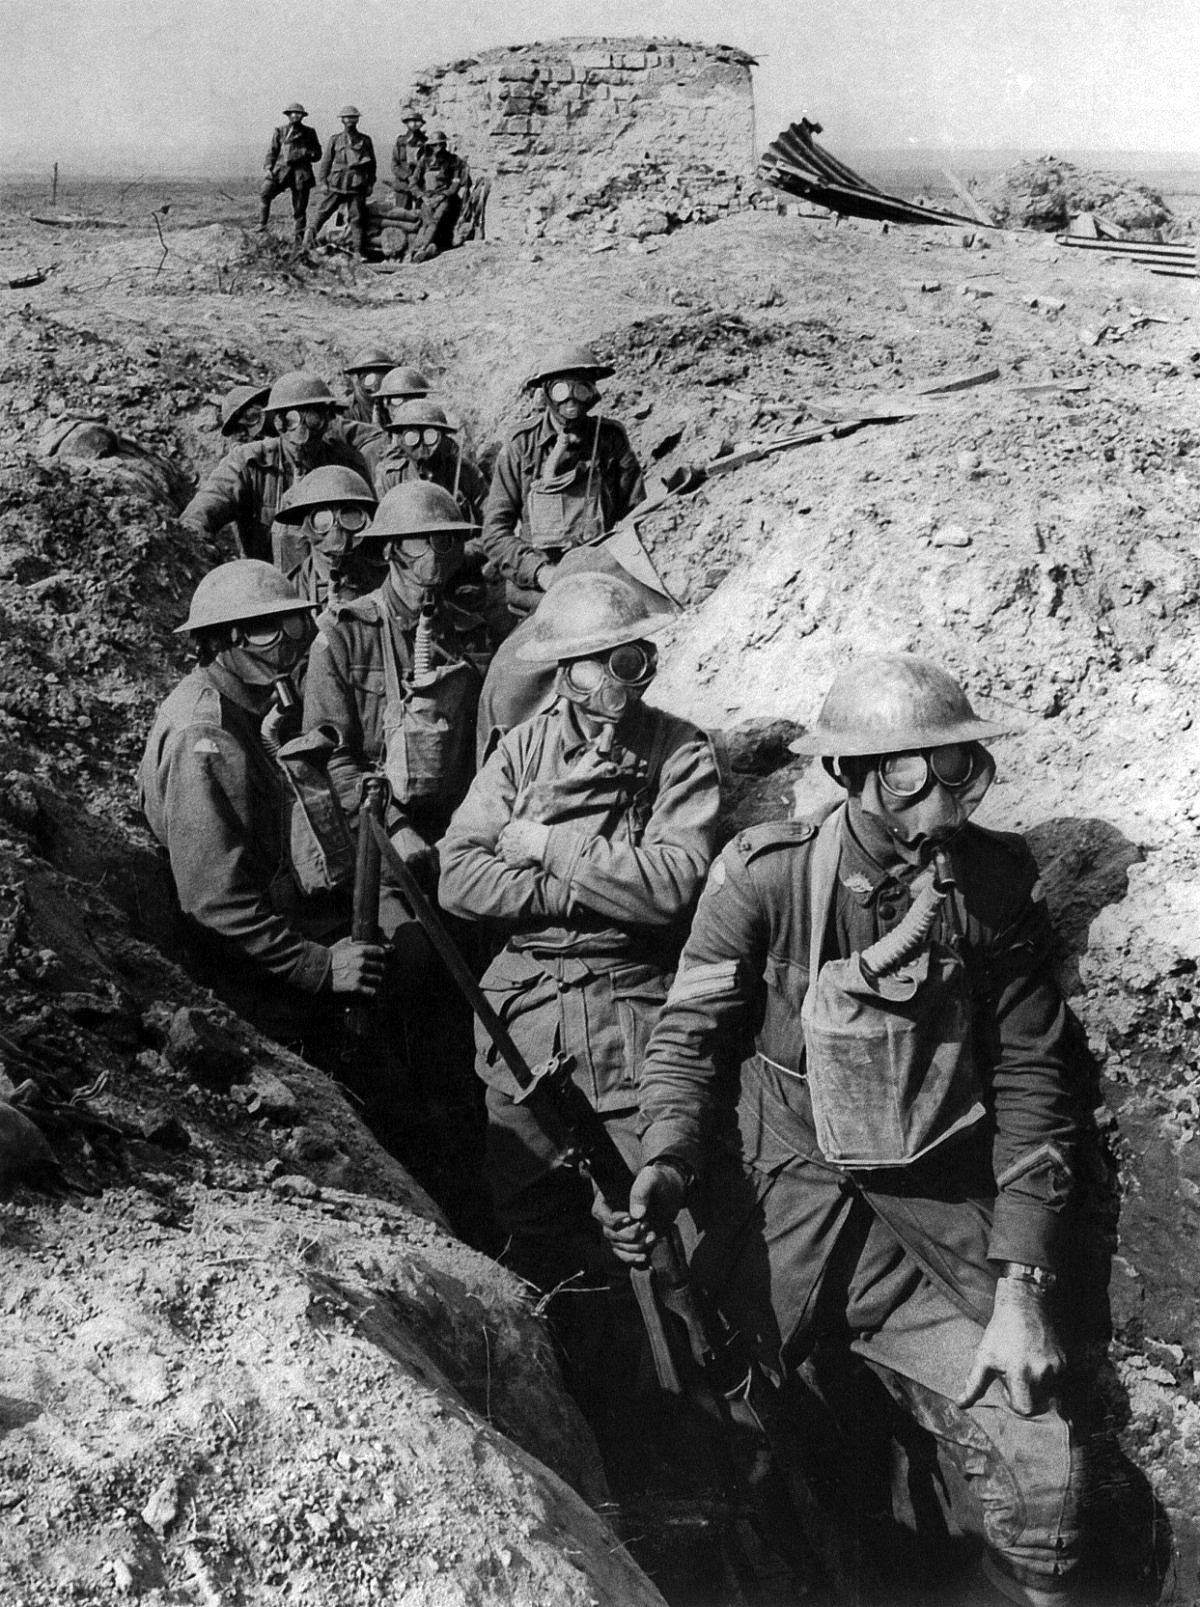 Battle of Passchendaele - Wikipedia